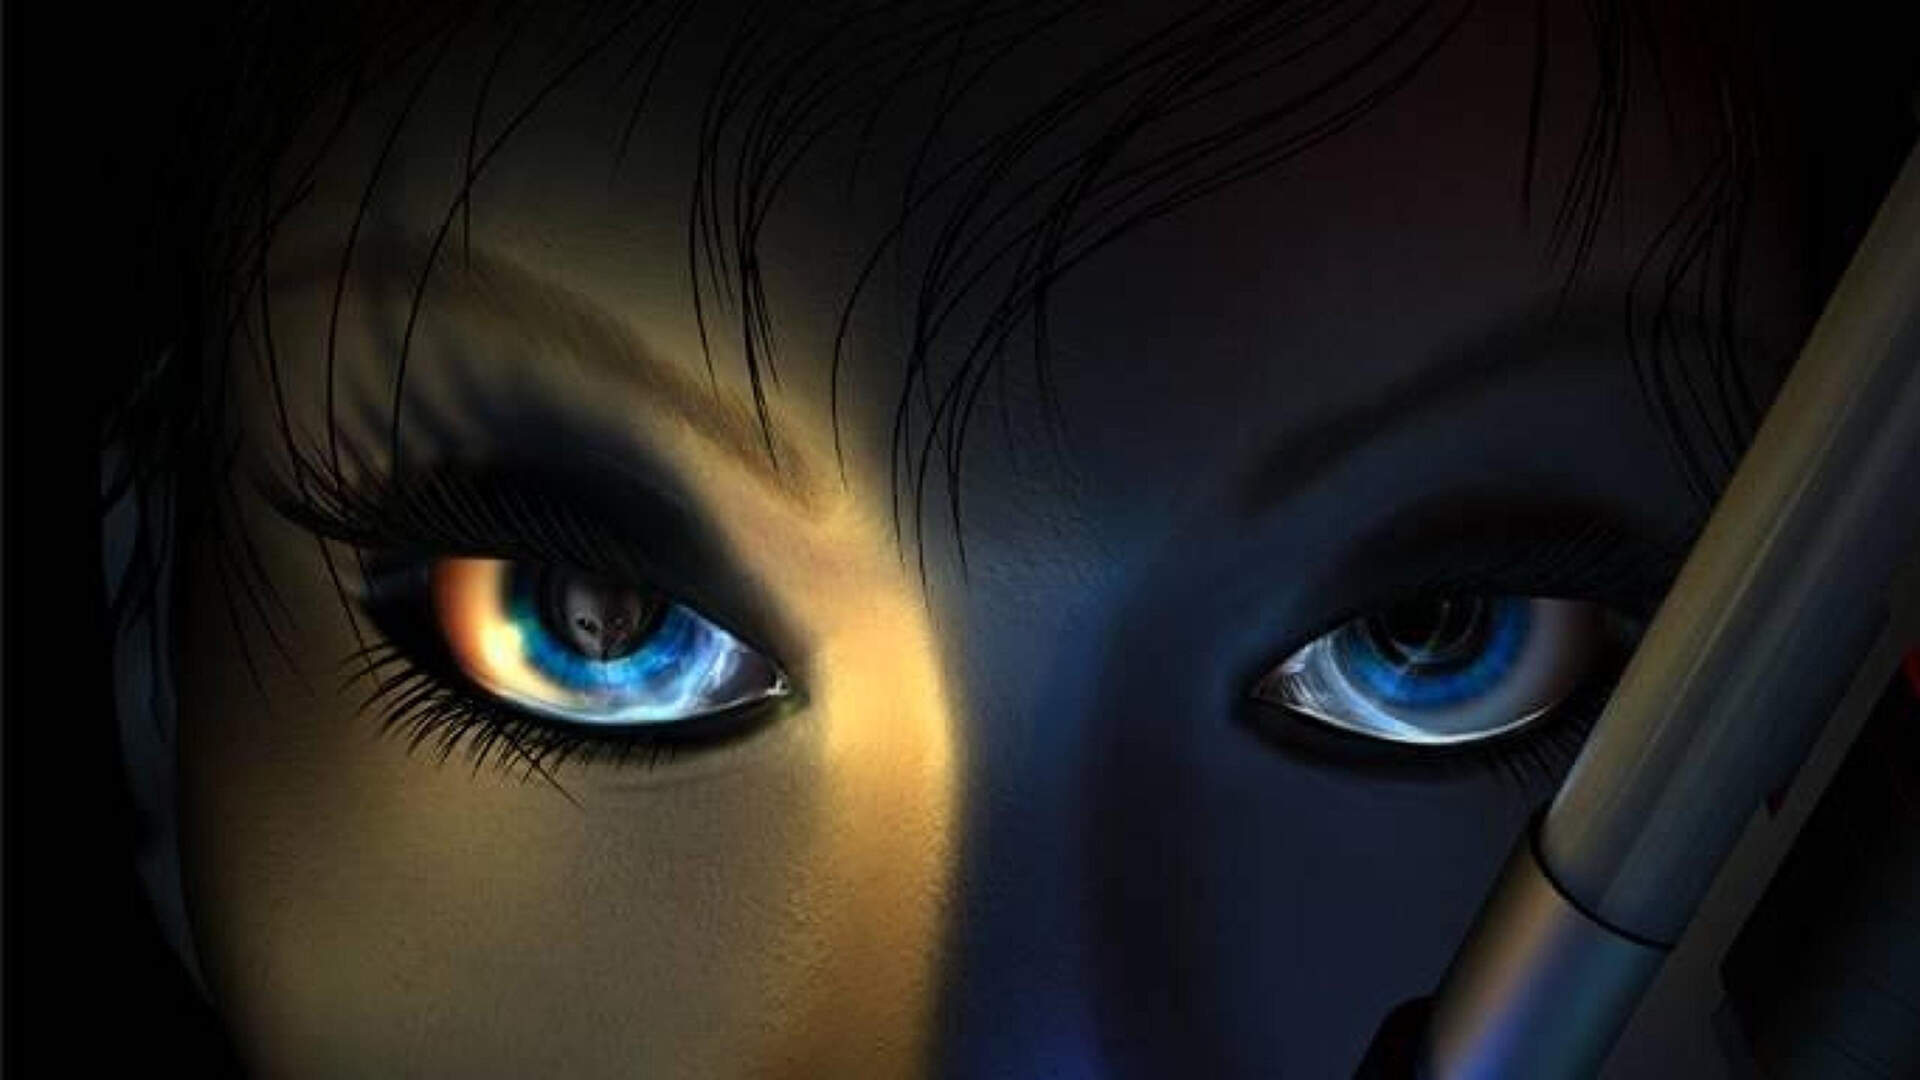 Perfect Dark Turns 20 This Week. Now is the Time for a Revival